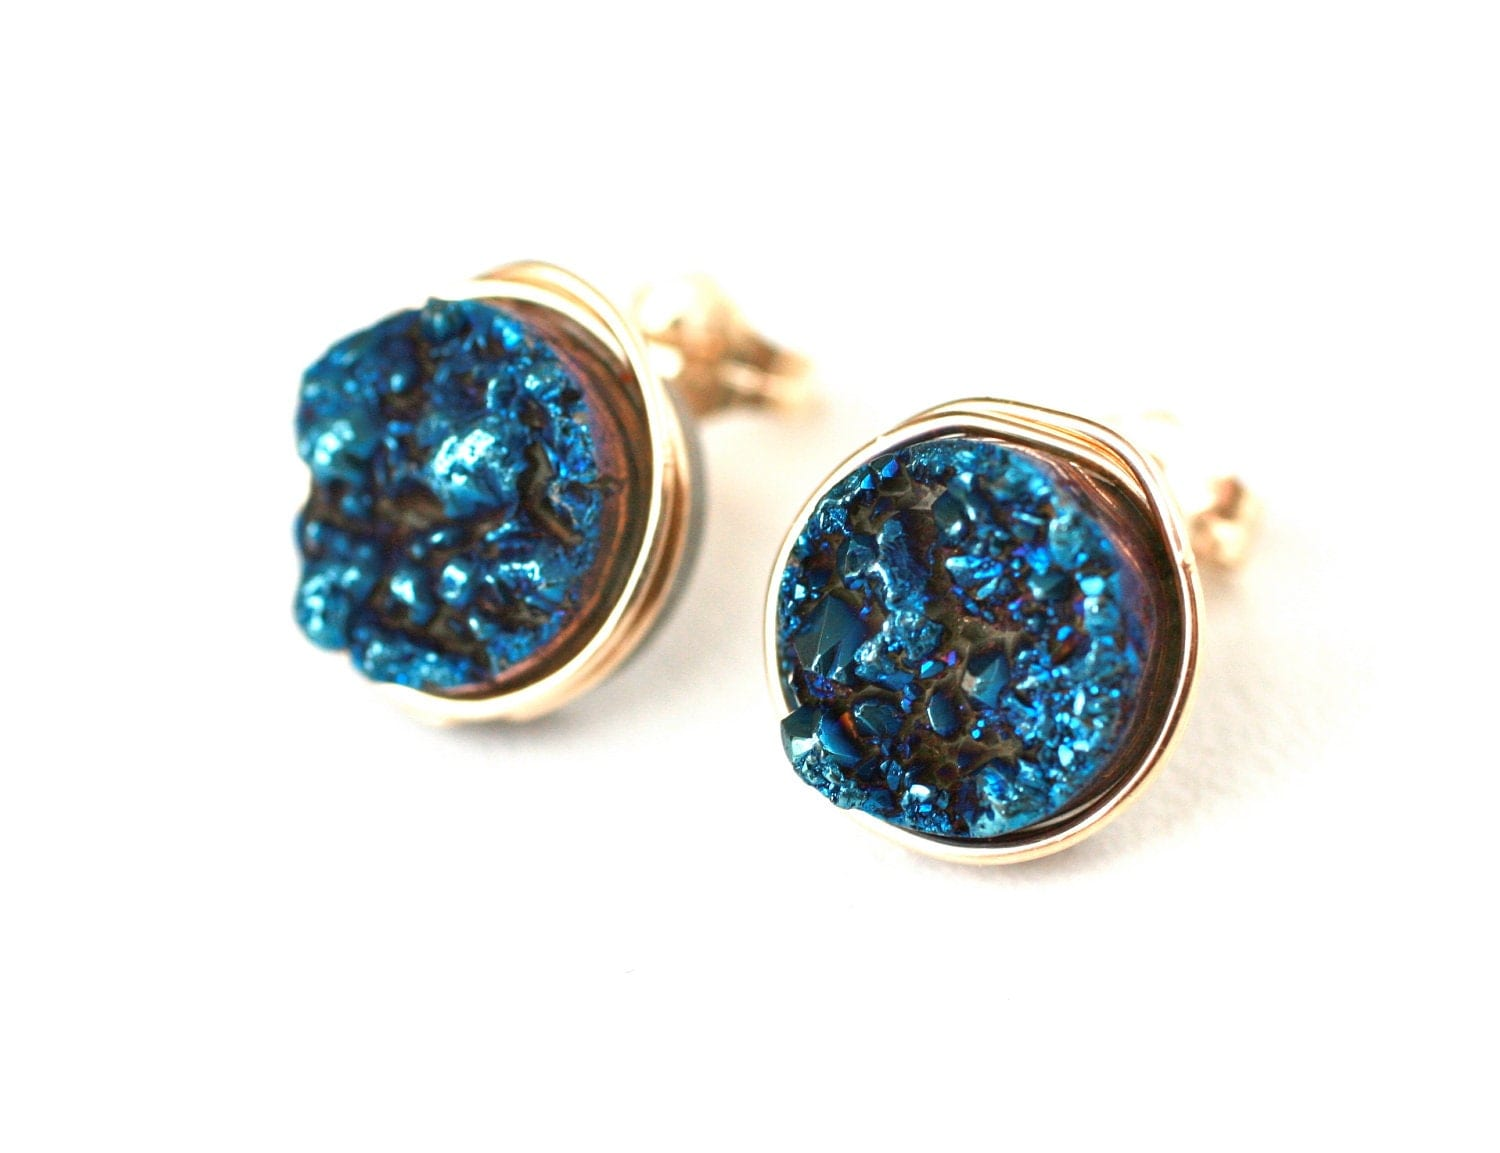 Blue Titanium Druzy Quartz Stud Earrings Wire Wrapped Post 14k Gold Filled - Gift for Her, Under 25 dollars